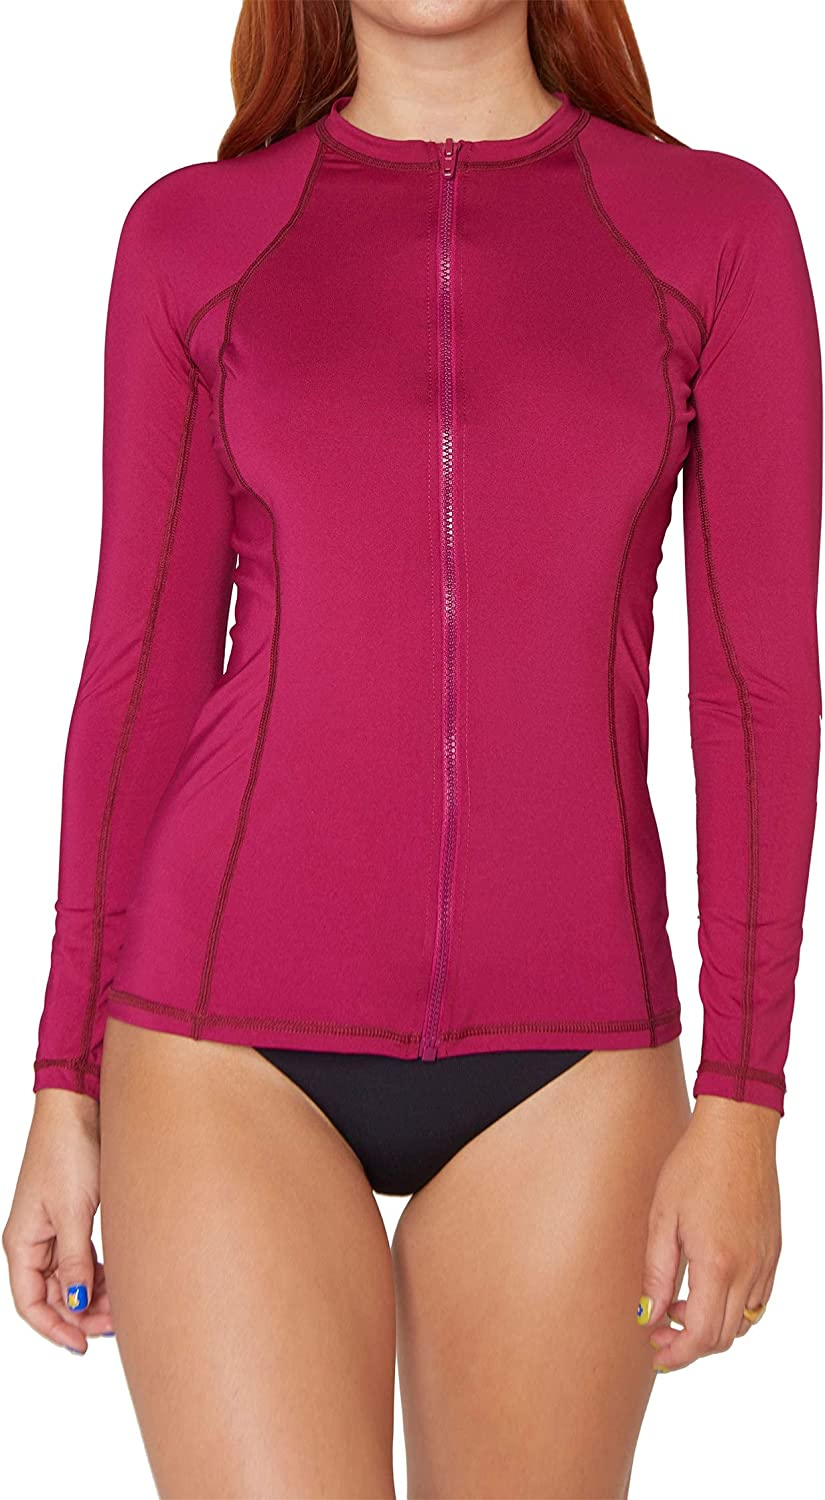 Hurley Women's One and Only Zip LS Rash Guard - Fireberry